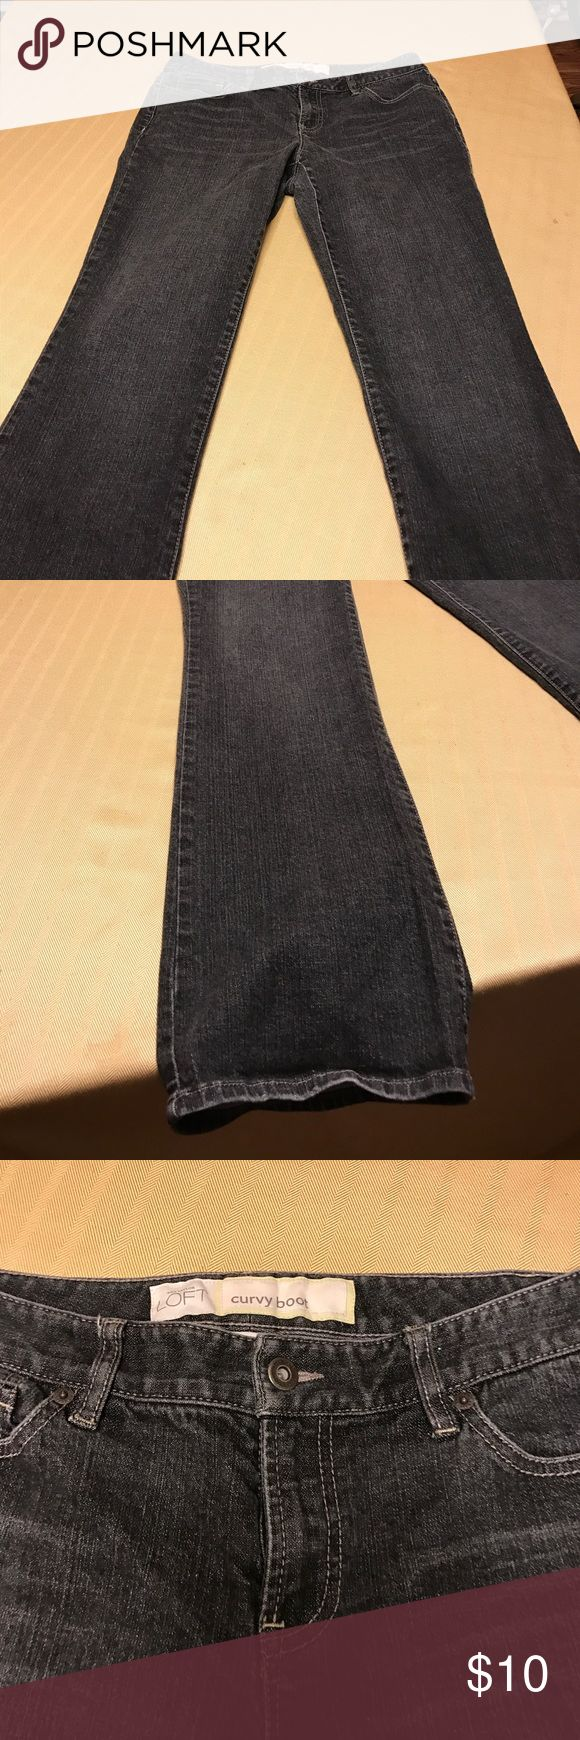 Ann Taylor Loft Women's Dark Wash Jeans Gently used. No noticeable flaws, tears, stains or marks. Great condition! LOFT Jeans Straight Leg